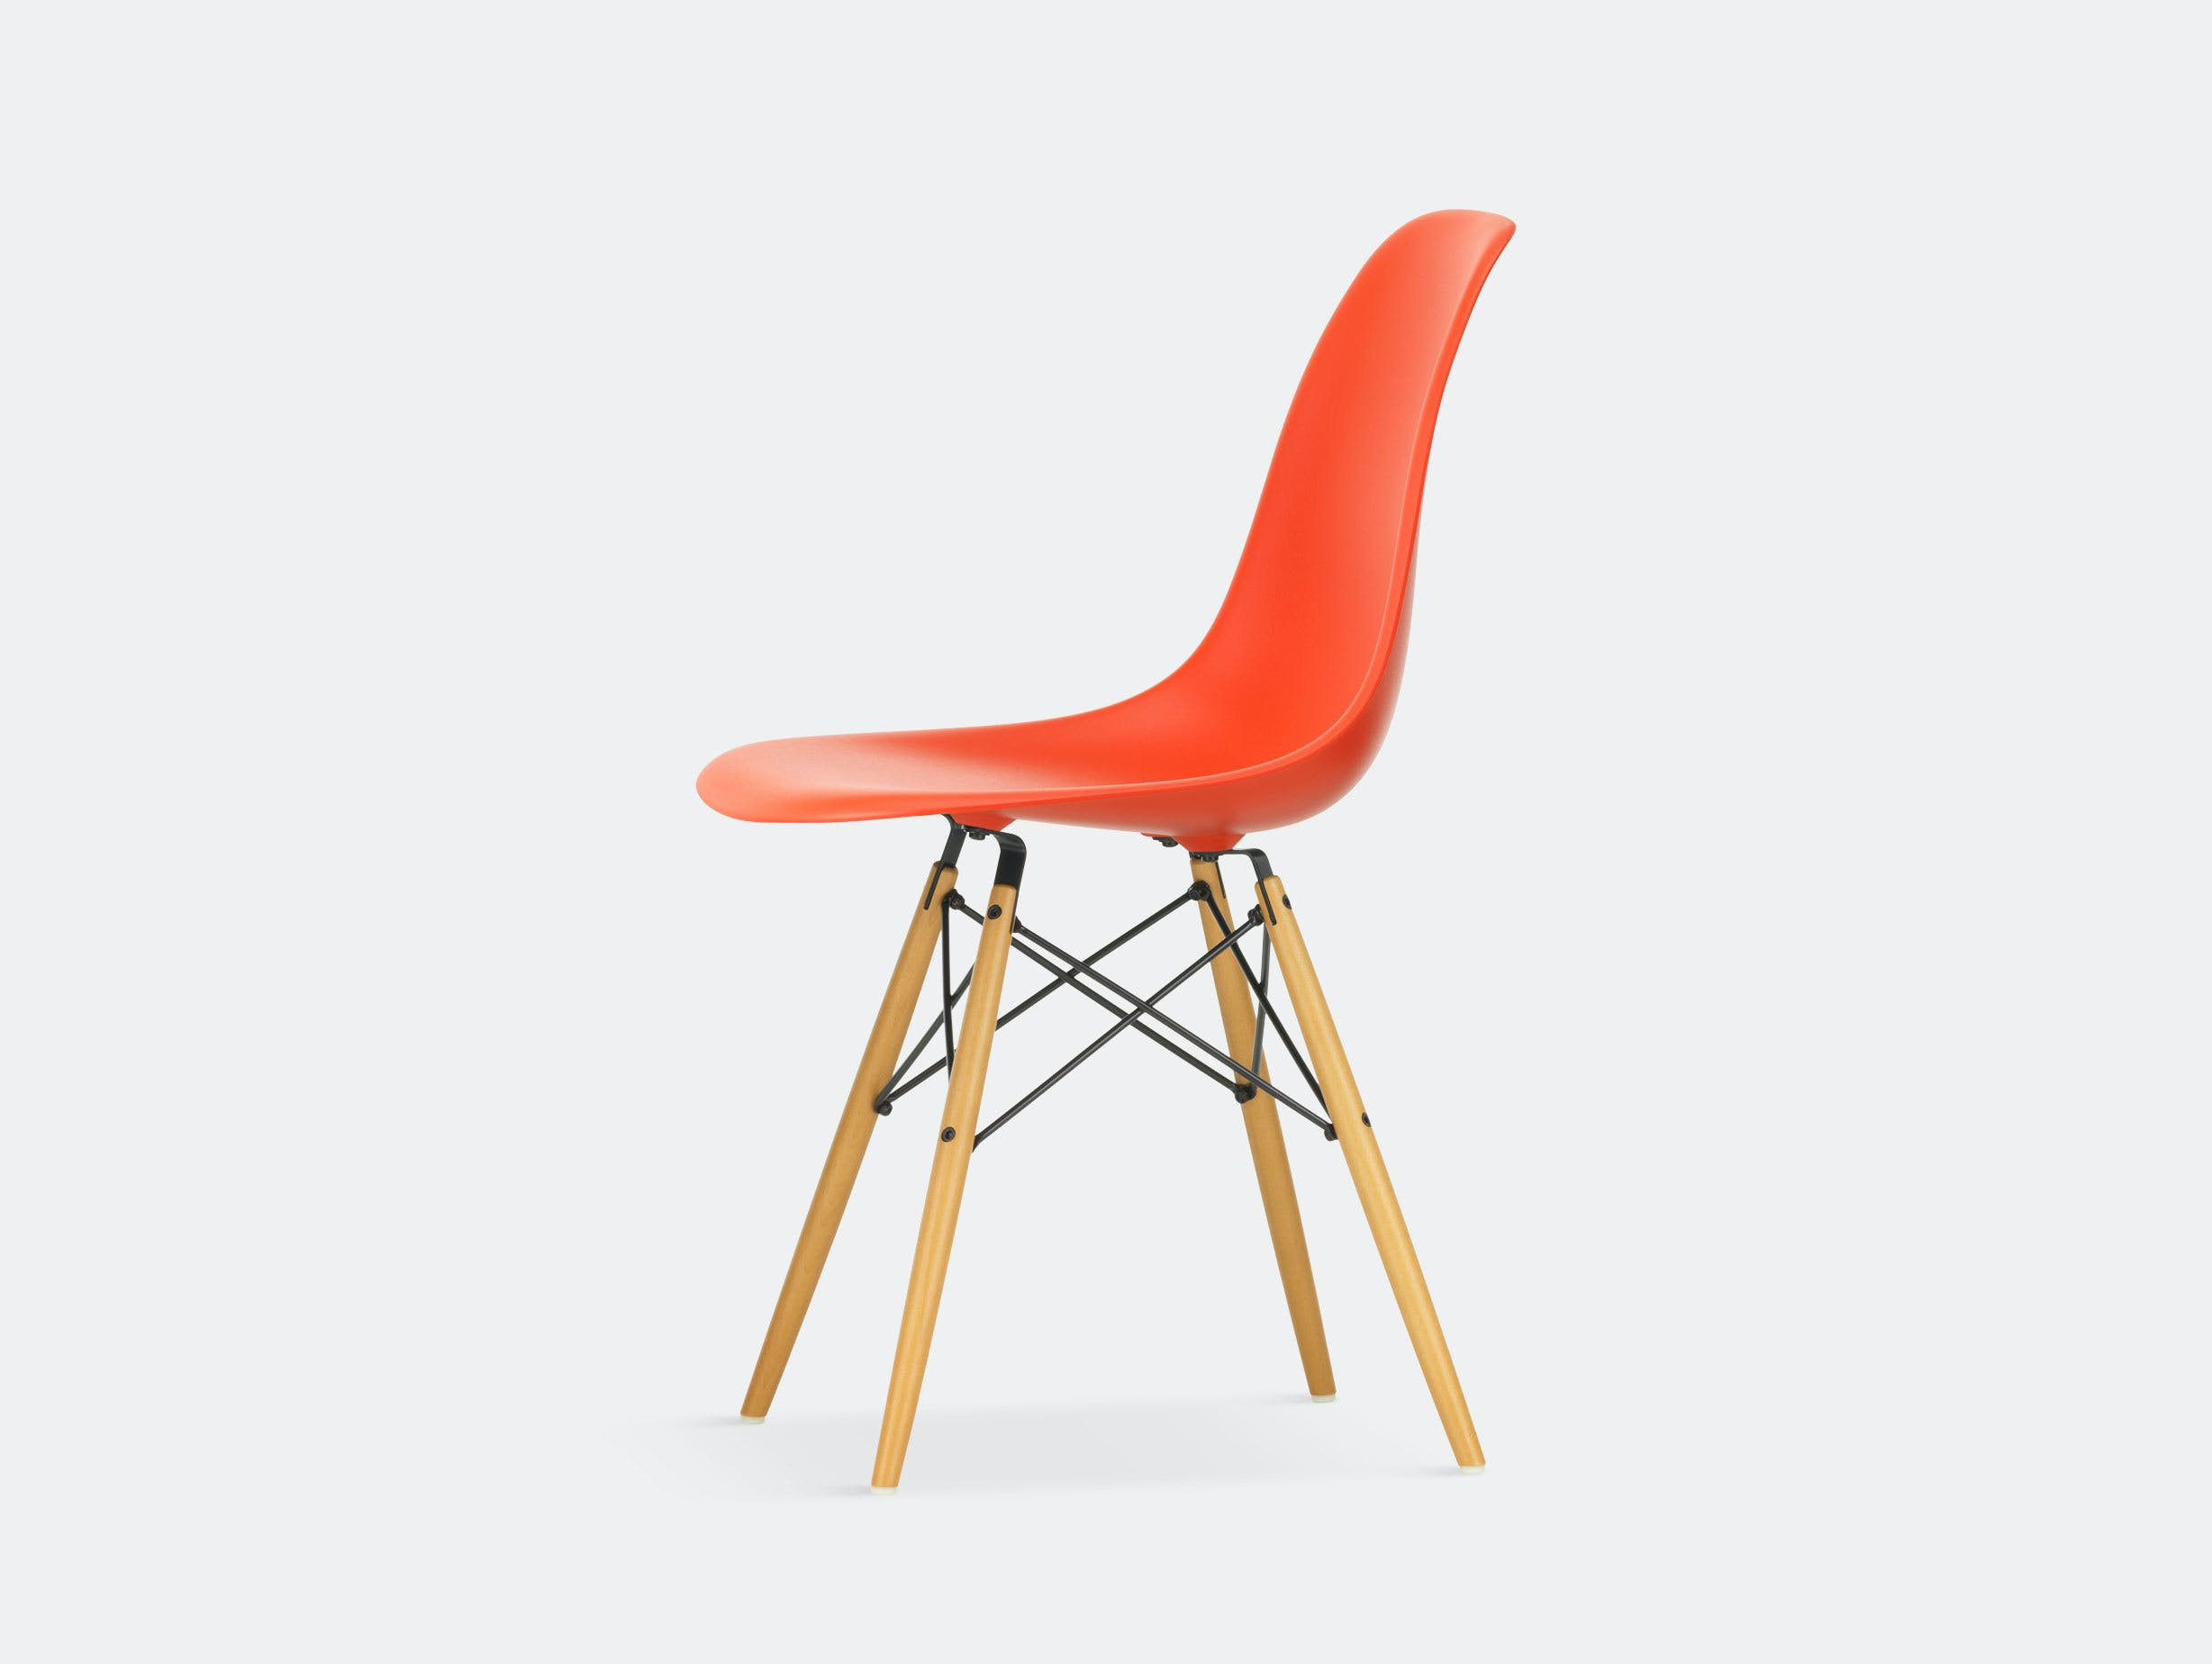 Vitra Eames DSW Plastic Side Chair poppy red golden maple legs